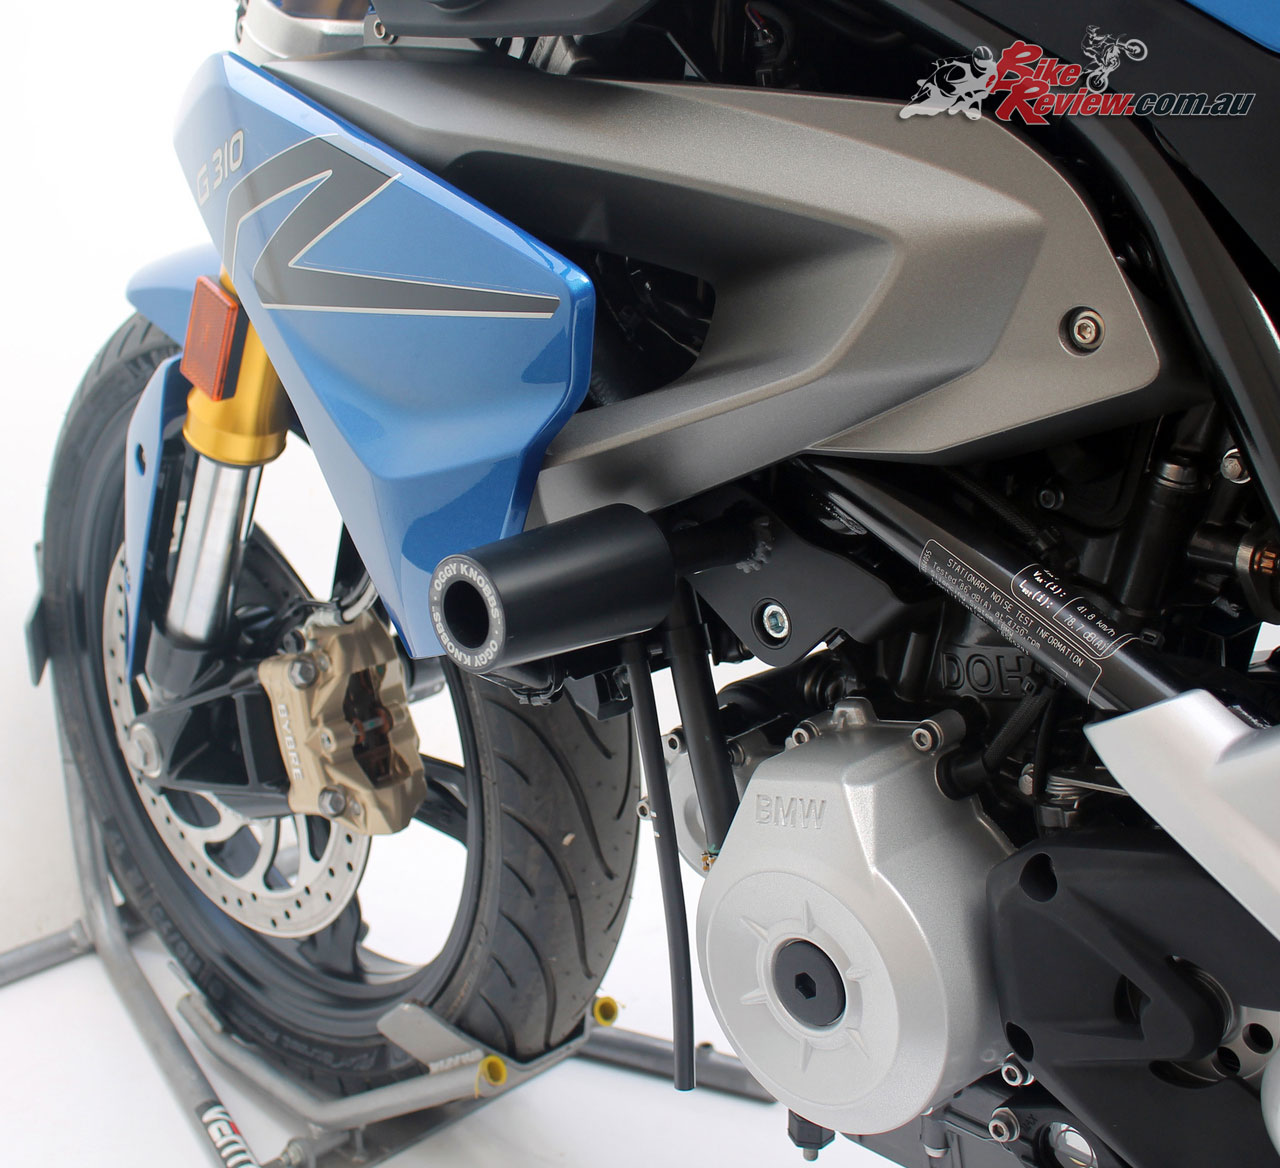 Promoto Oggy Knobbs for the BMW G 310 R